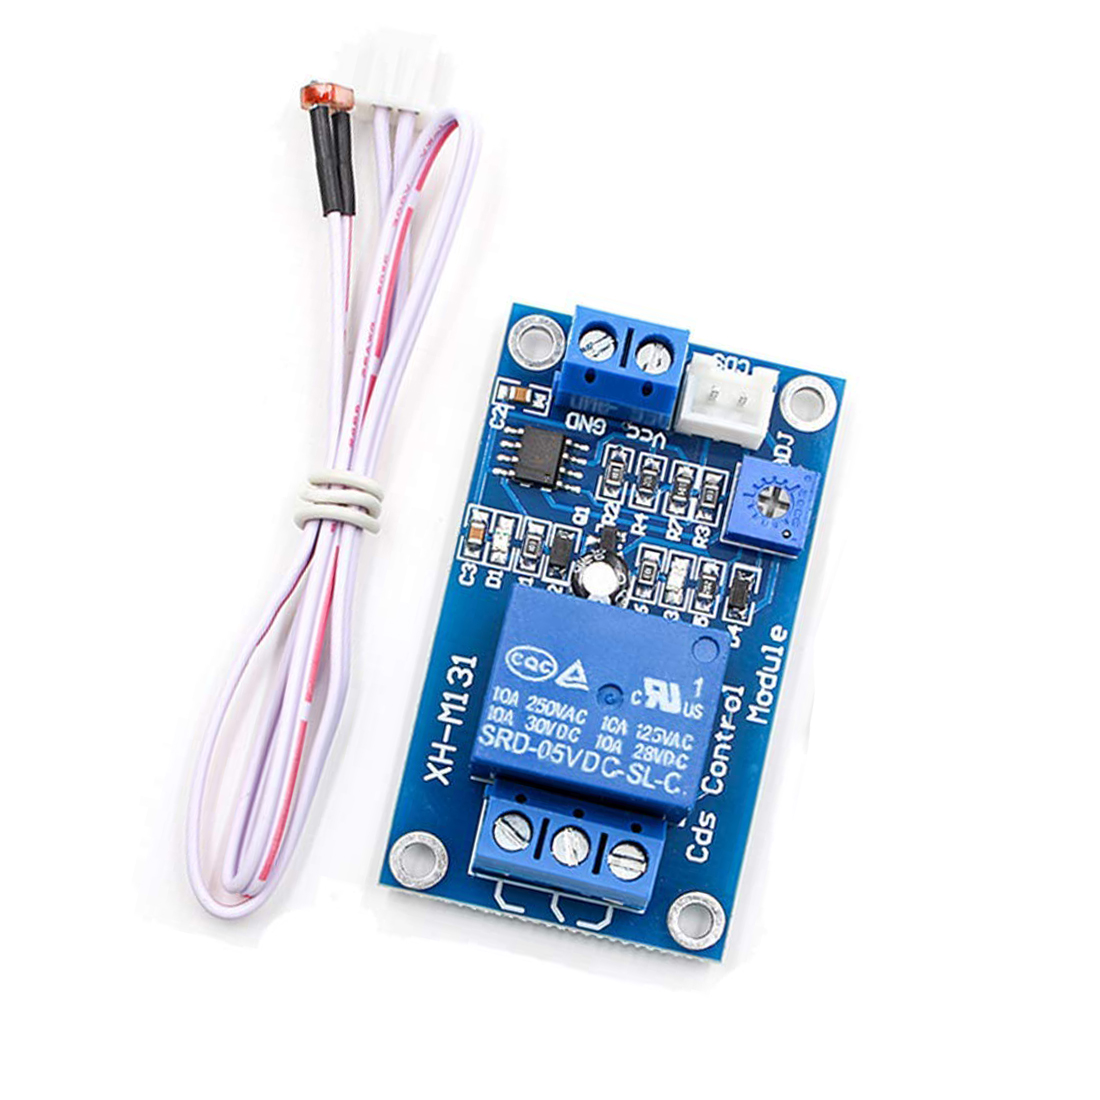 12V Photoresistor Sensor Relay Module Car Light Automatic Control Switch with Cable